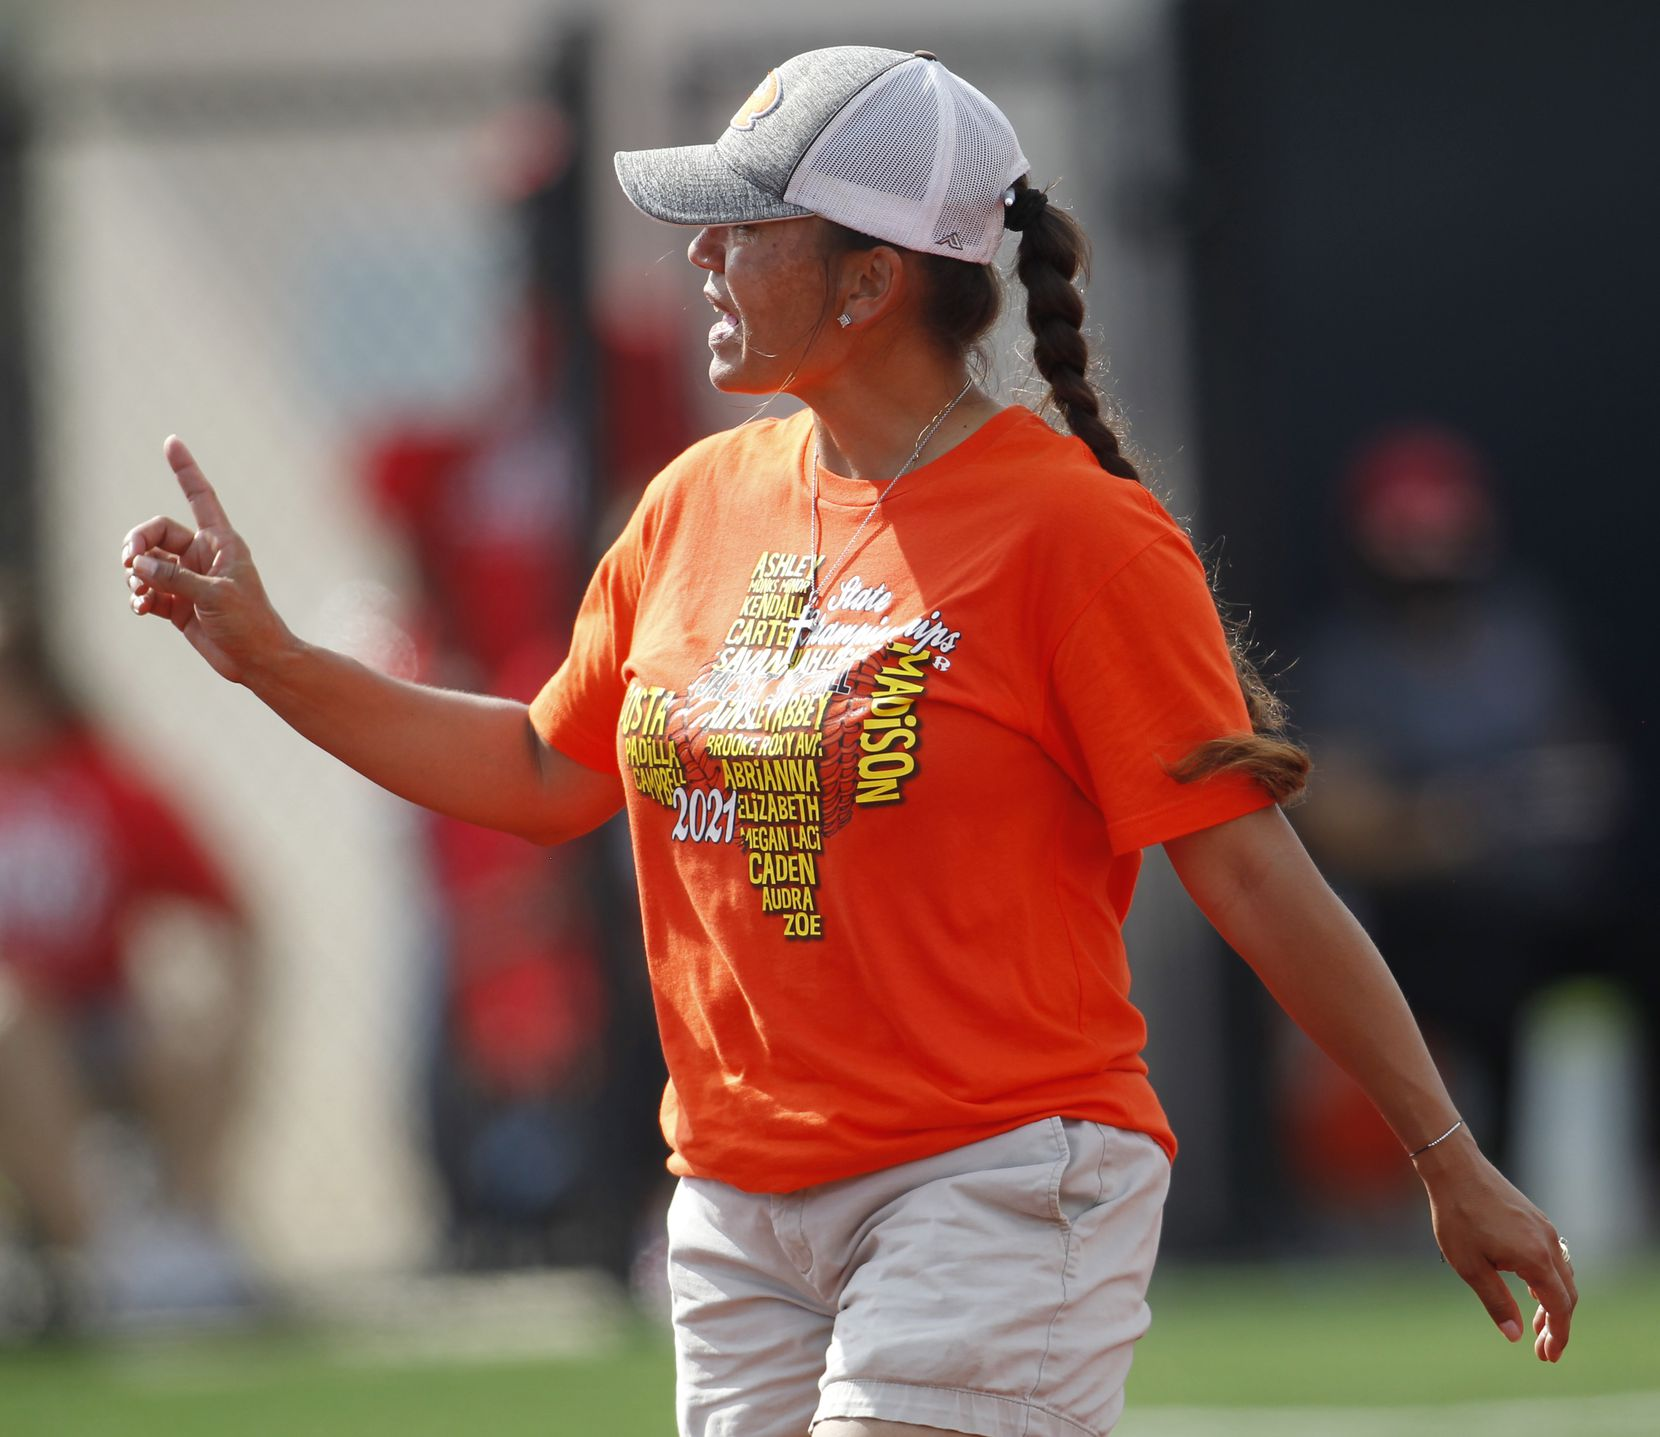 Rockwall head coach Shadie Acosta converses with the plate umpire after a mound visit during the bottom of the 4th inning against Converse Judson. The two teams played their UIL 6A state softball semifinal game at Leander Glenn High School in Leander on June 4, 2021. (Steve Hamm/ Special Contributor)